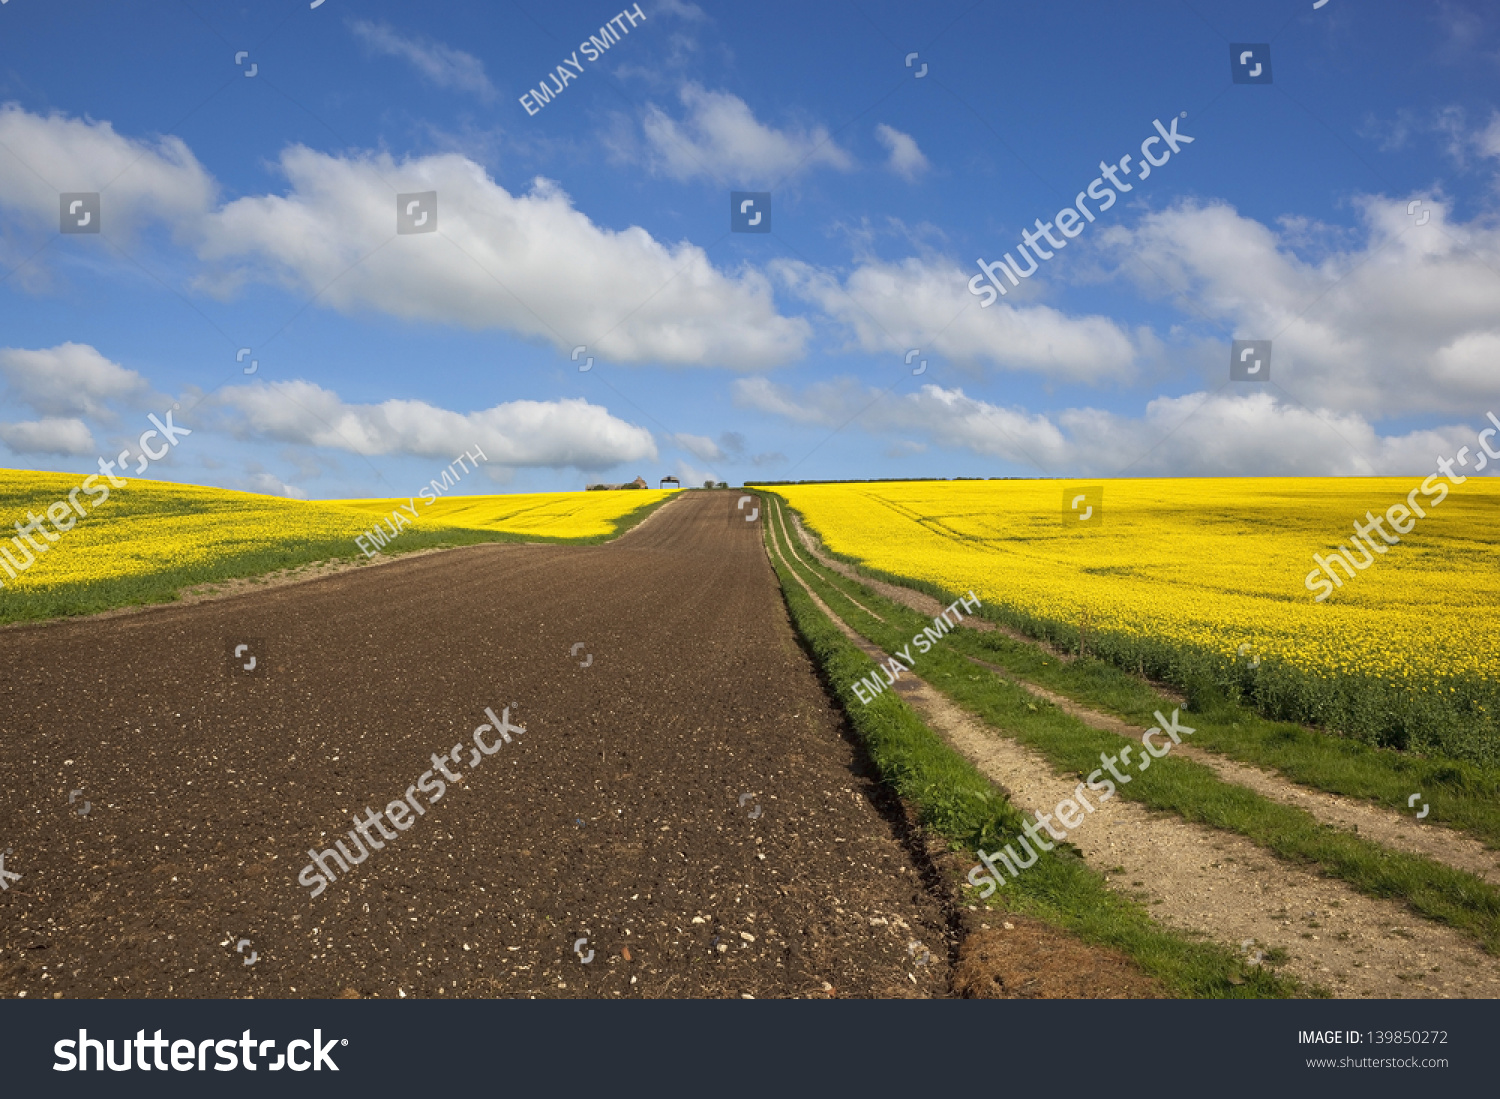 Surrounded By Canoloa Feilds Quotes: A Farm Track Leading Up To Farm Buildings Surrounded By